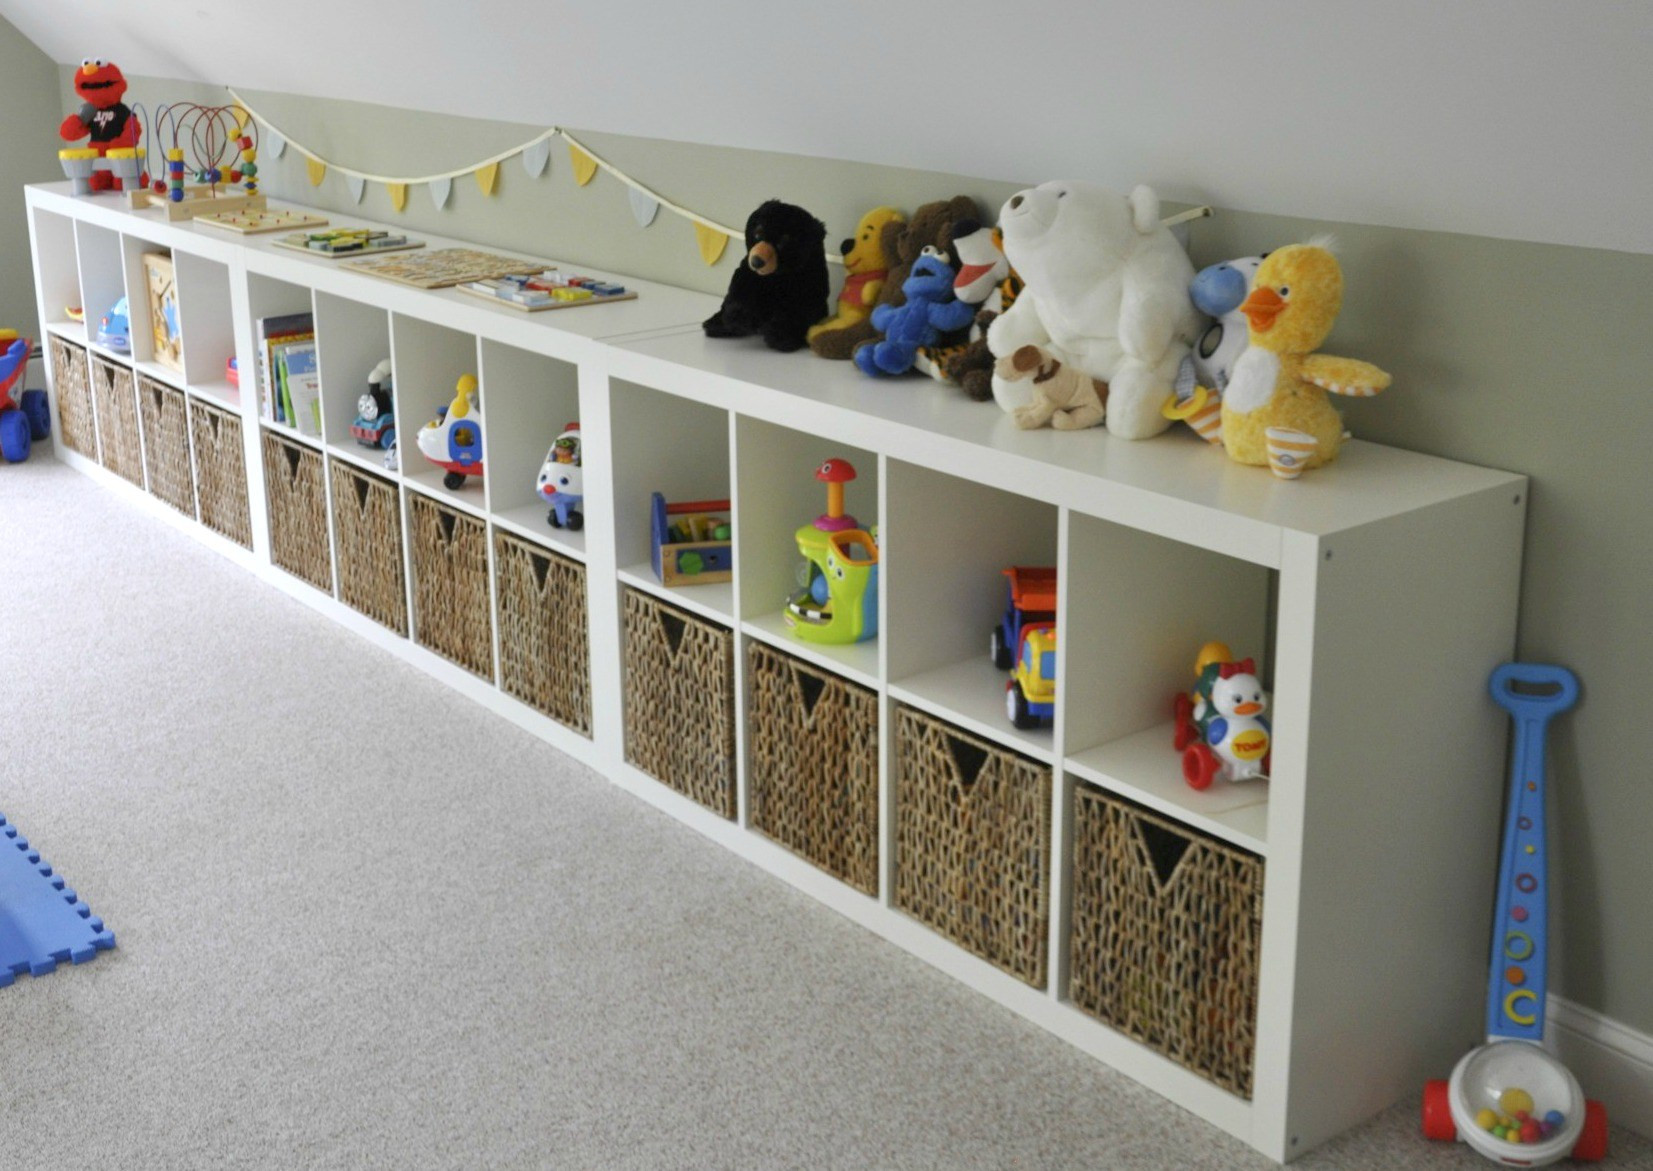 Best ideas about Ikea Storage Ideas . Save or Pin Ikea Expedit Playroom Storage Now.